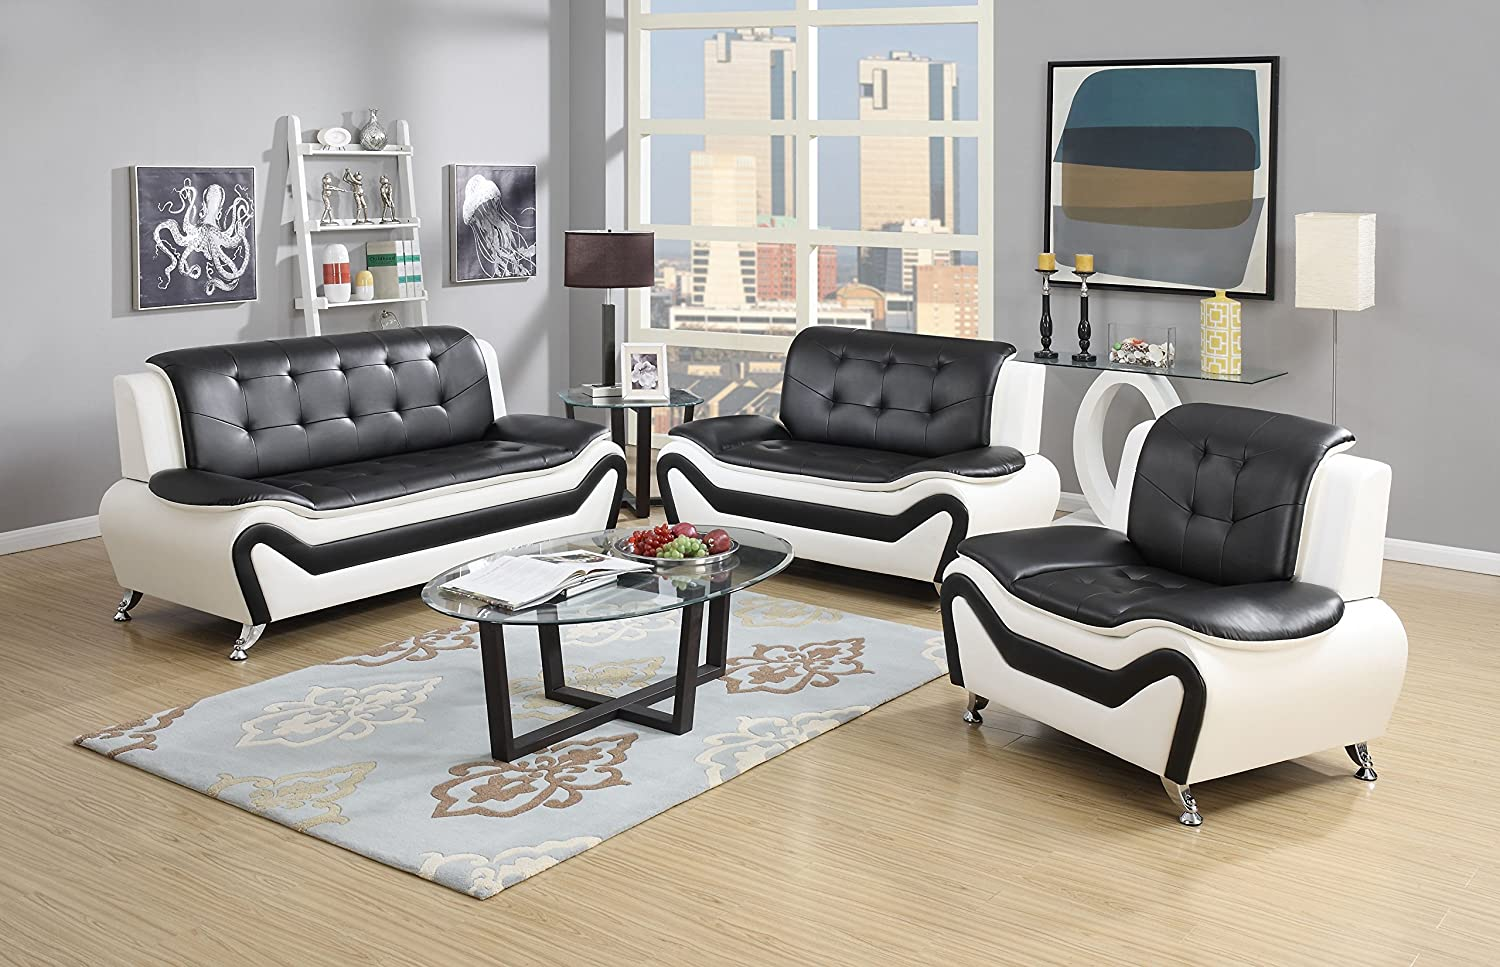 Superieur Amazon.com: US Pride Furniture 3 Piece Modern Bonded Leather Sofa Set With  Sofa, Loveseat, And Chair, White/Black: Kitchen U0026 Dining